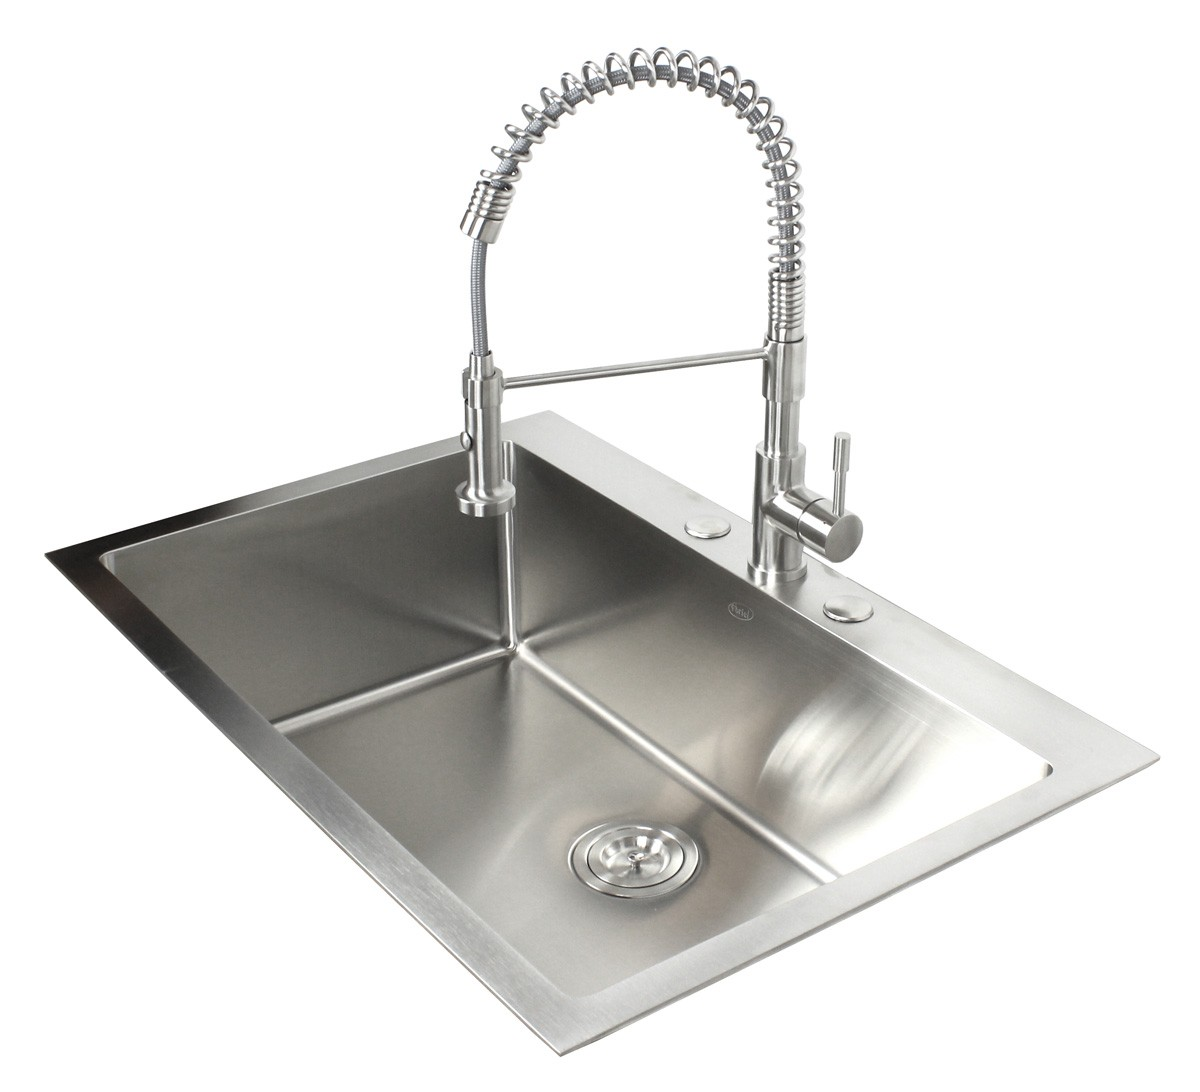 33 inch top mount drop in stainless steel single bowl kitchen sink 33 inch top mount drop in stainless steel single bowl kitchen sink 15mm radius design workwithnaturefo